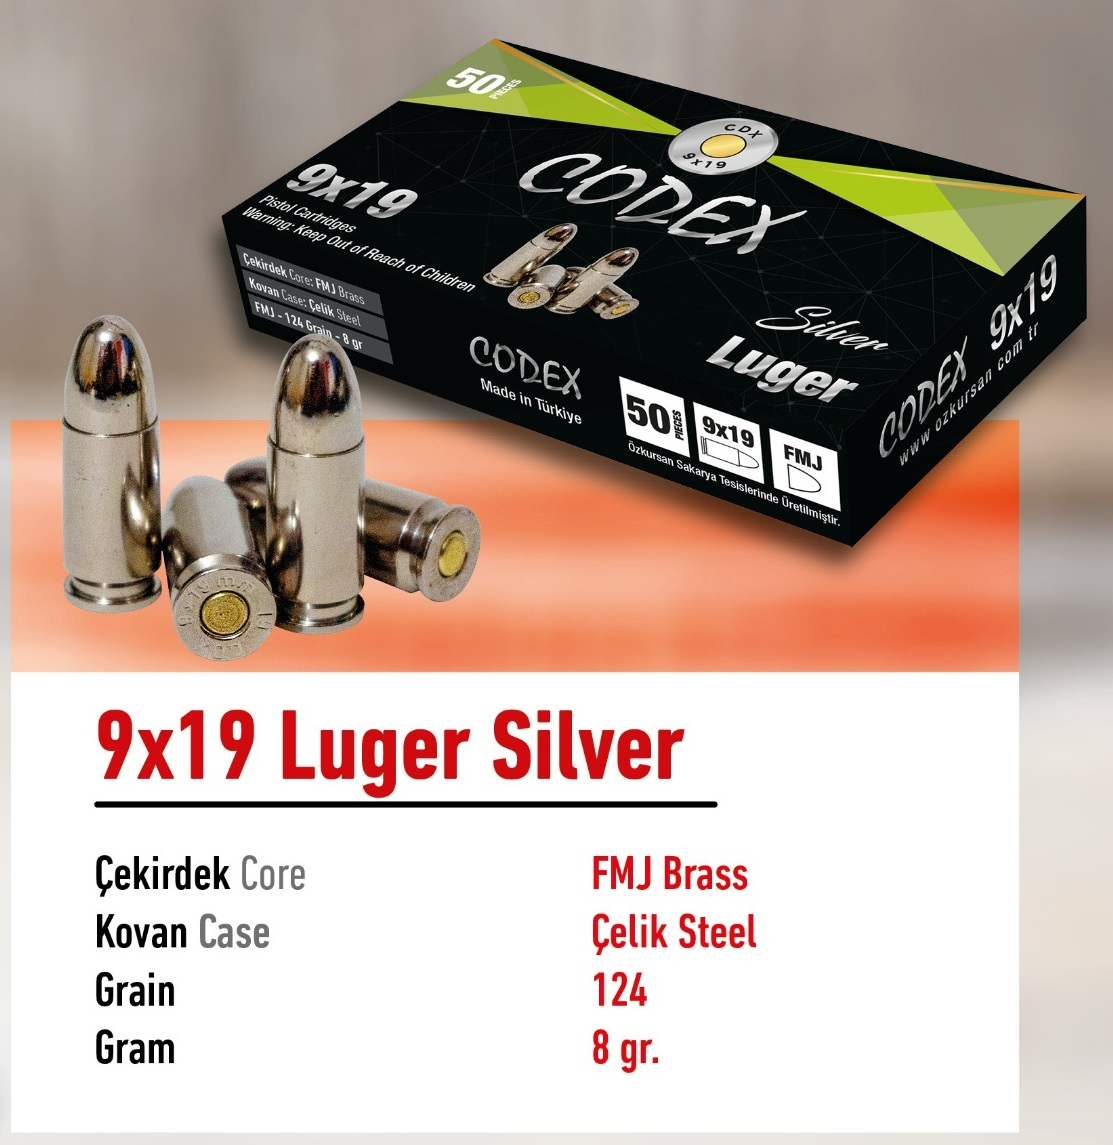 Luger Silver 9x19